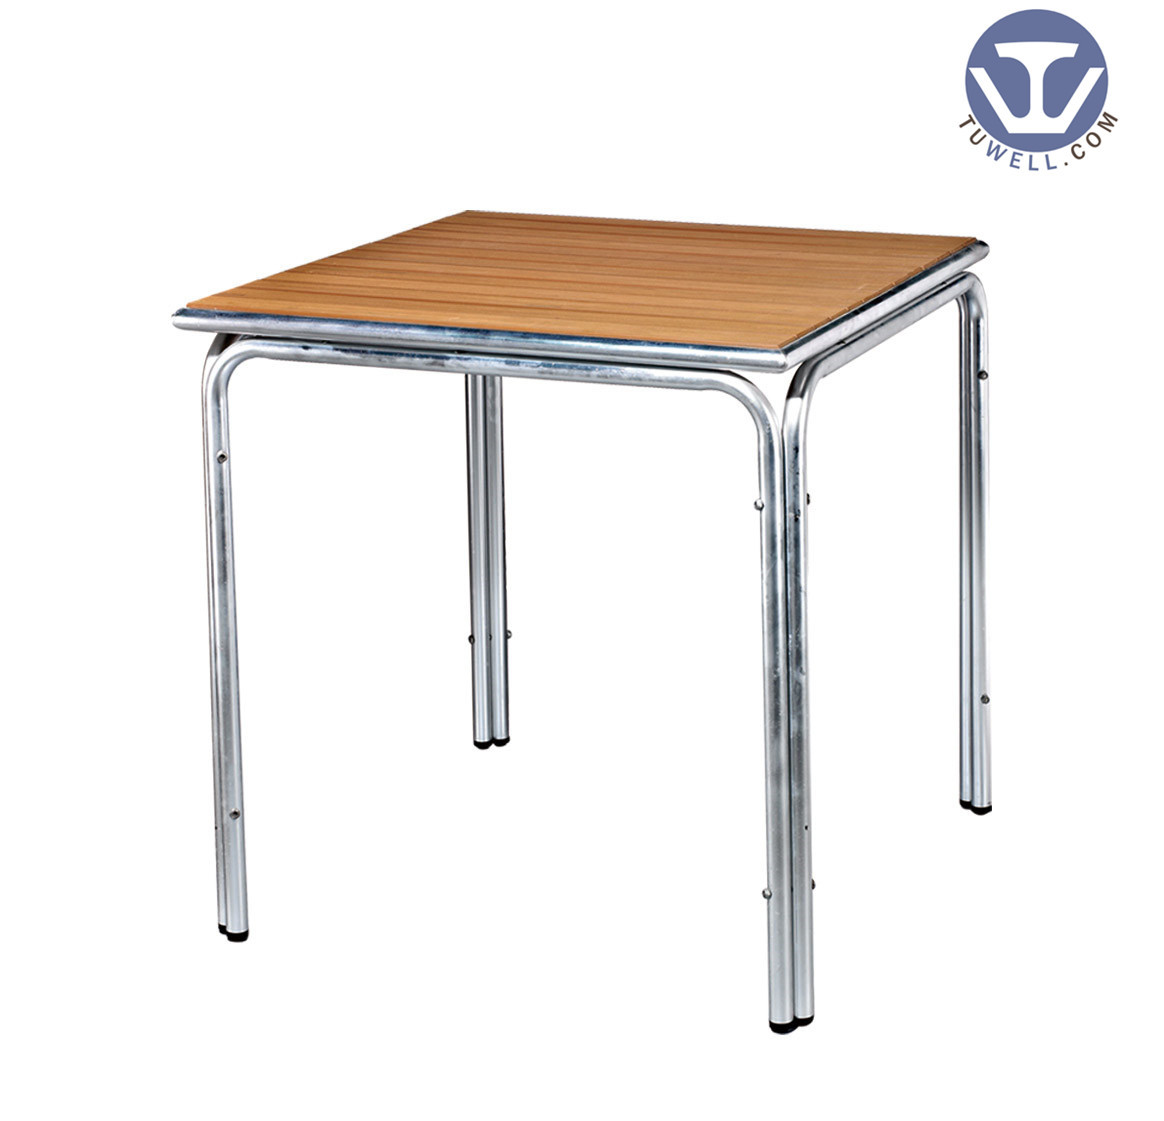 TW4020 Metal coffee table cafe table restaurant table